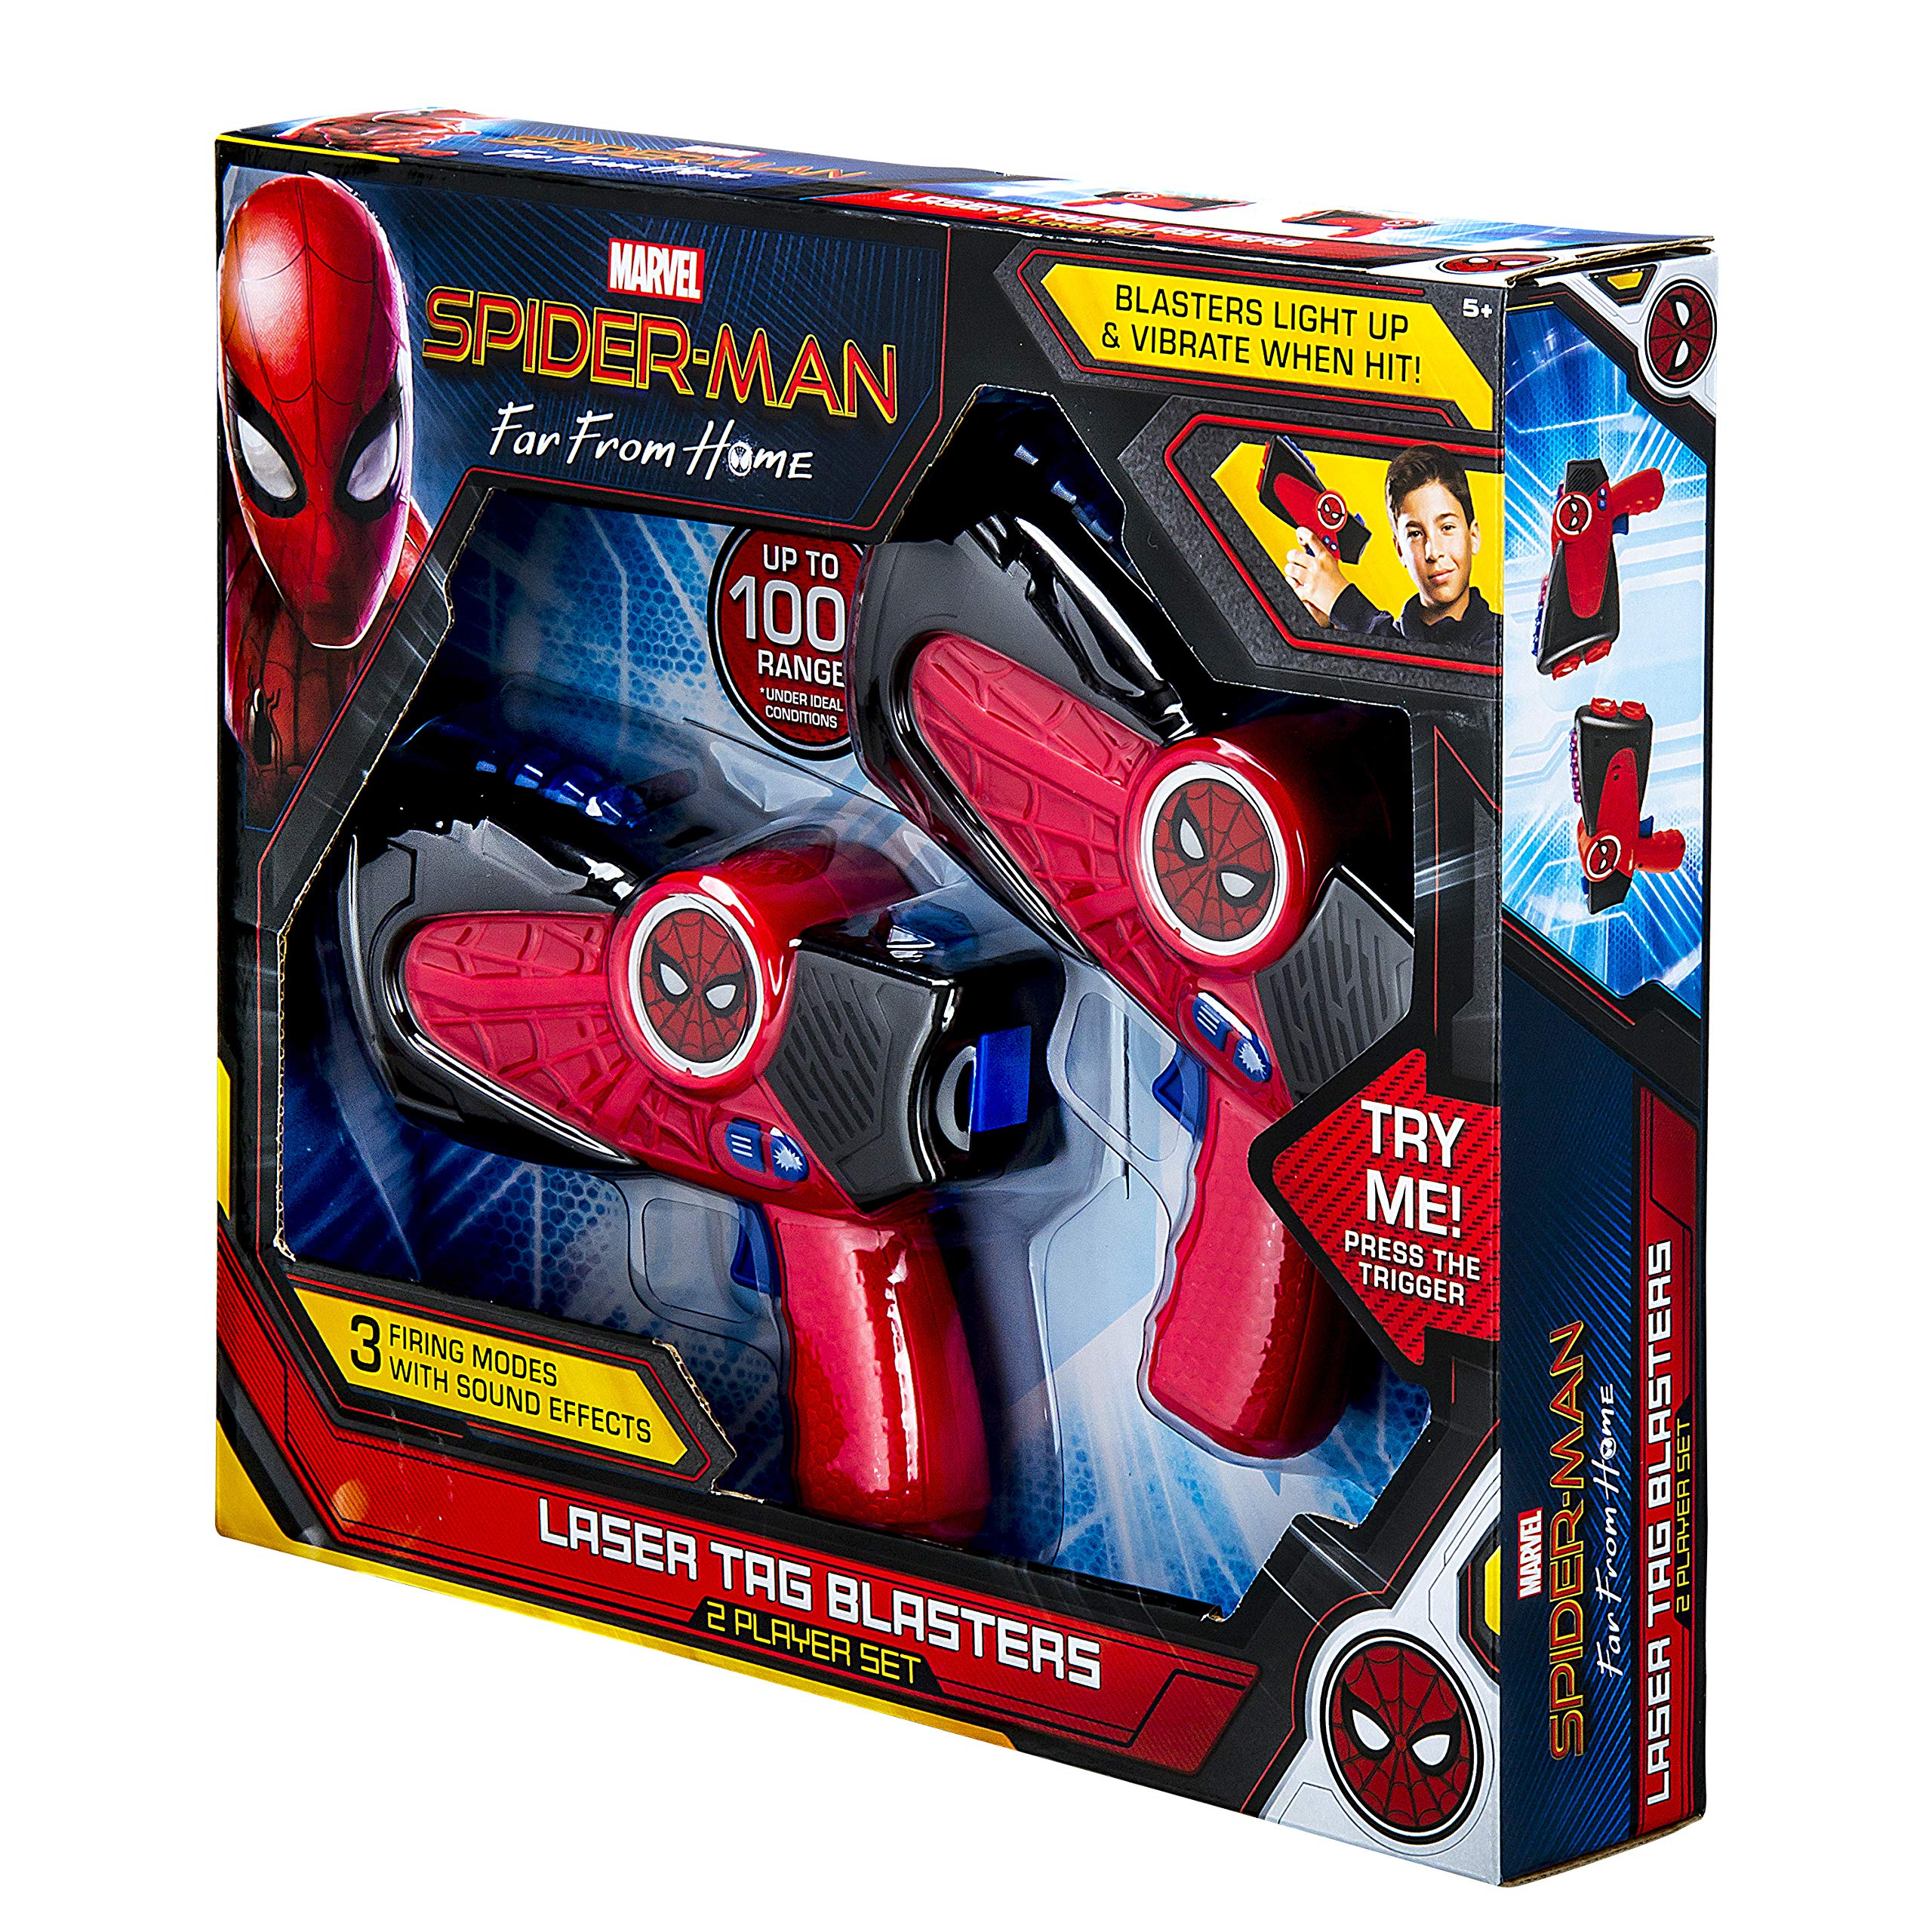 Spiderman Far from Home Laser-Tag for Kids Infared Lazer-Tag Blasters Lights Up & Vibrates When Hit by eKids (Image #8)